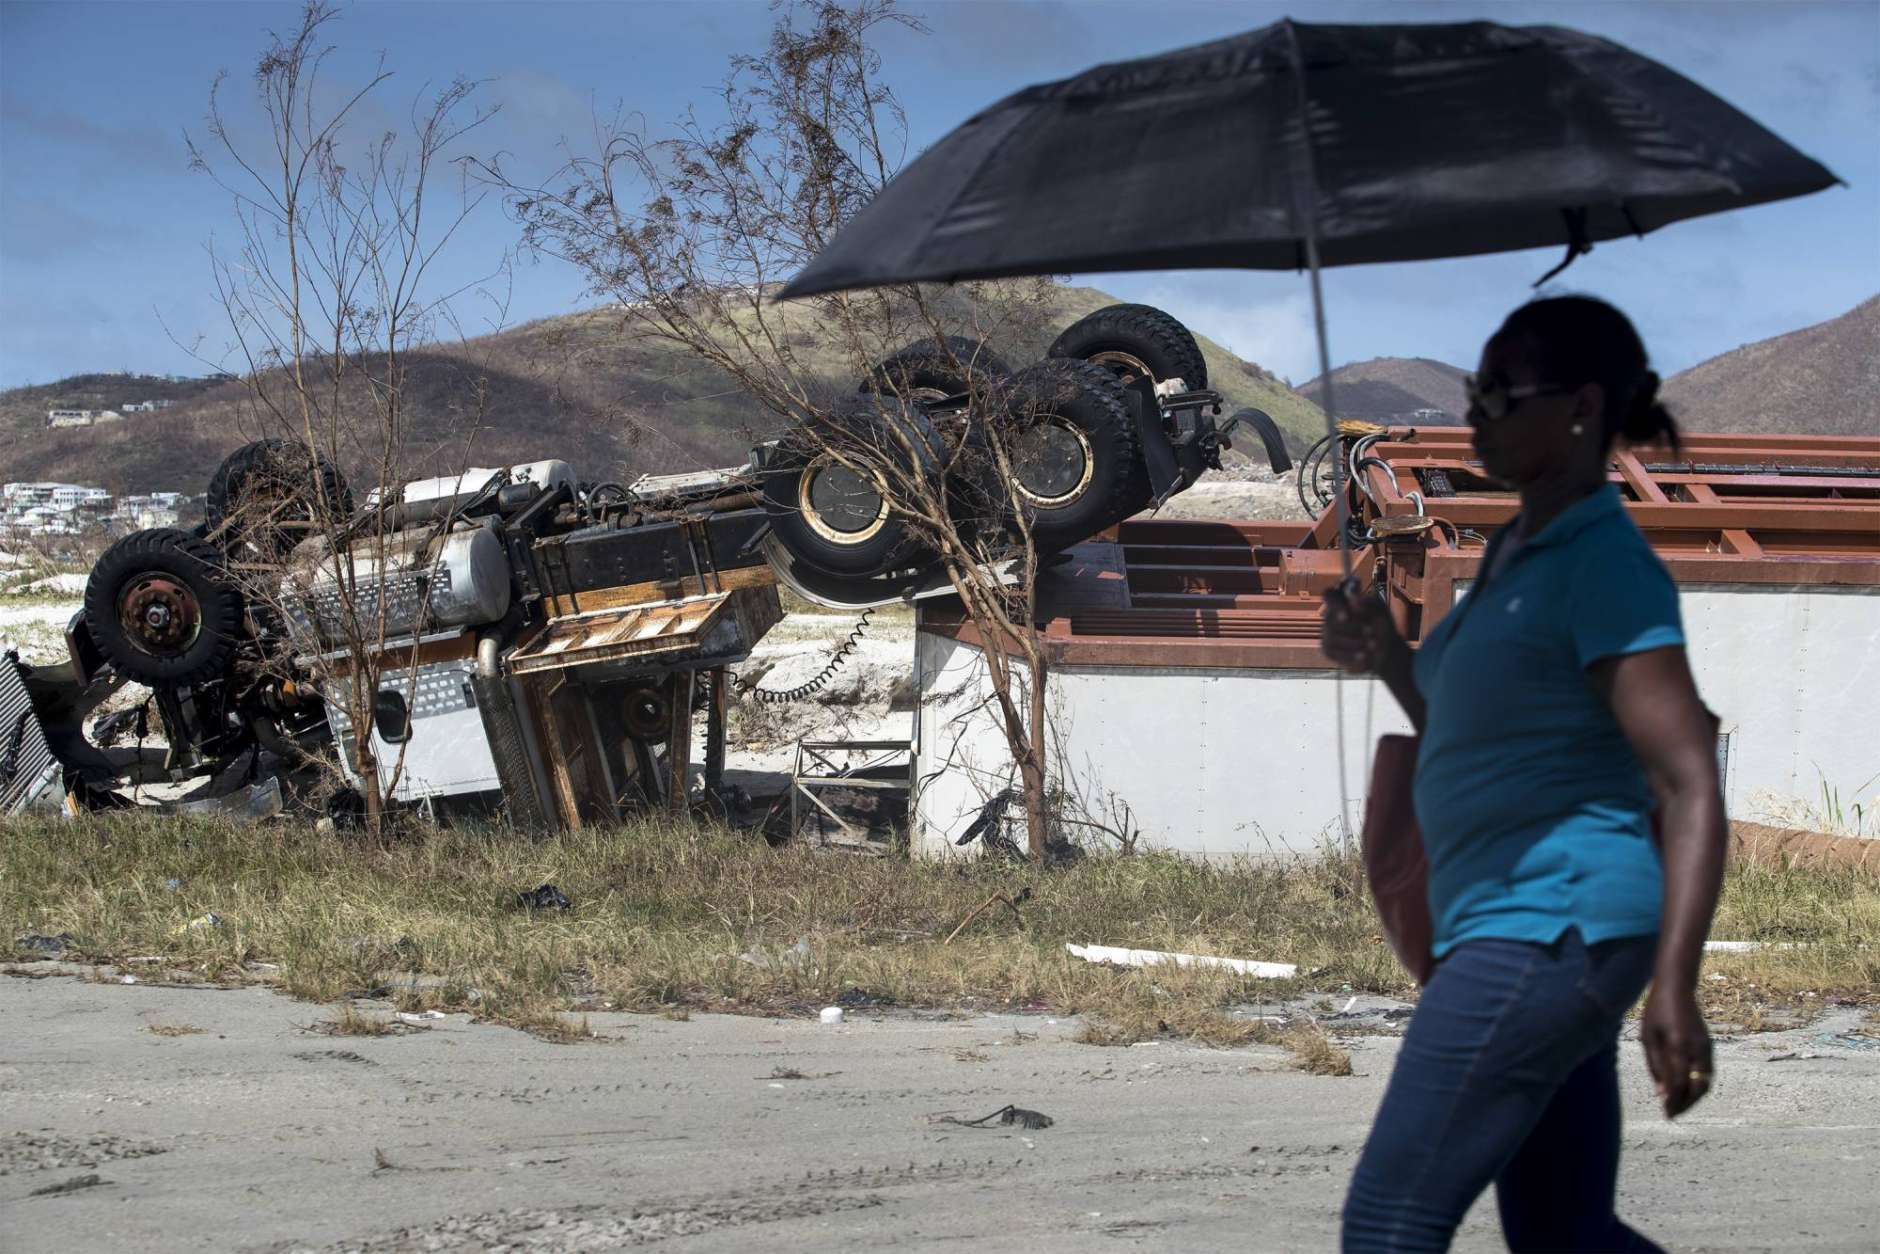 This photo provided by the Dutch Defense Ministry shows a woman passing an overturned truck after the passing of Hurricane Irma, in Dutch Caribbean St. Maarten, on Monday Sept. 11, 2017. Dutch King Willem-Alexander said the scenes of devastation he witnessed on the Caribbean island of St. Martin in the aftermath of Hurricane Irma are the worst he has ever seen. (Gerben Van Es/Dutch Defense Ministry via AP)